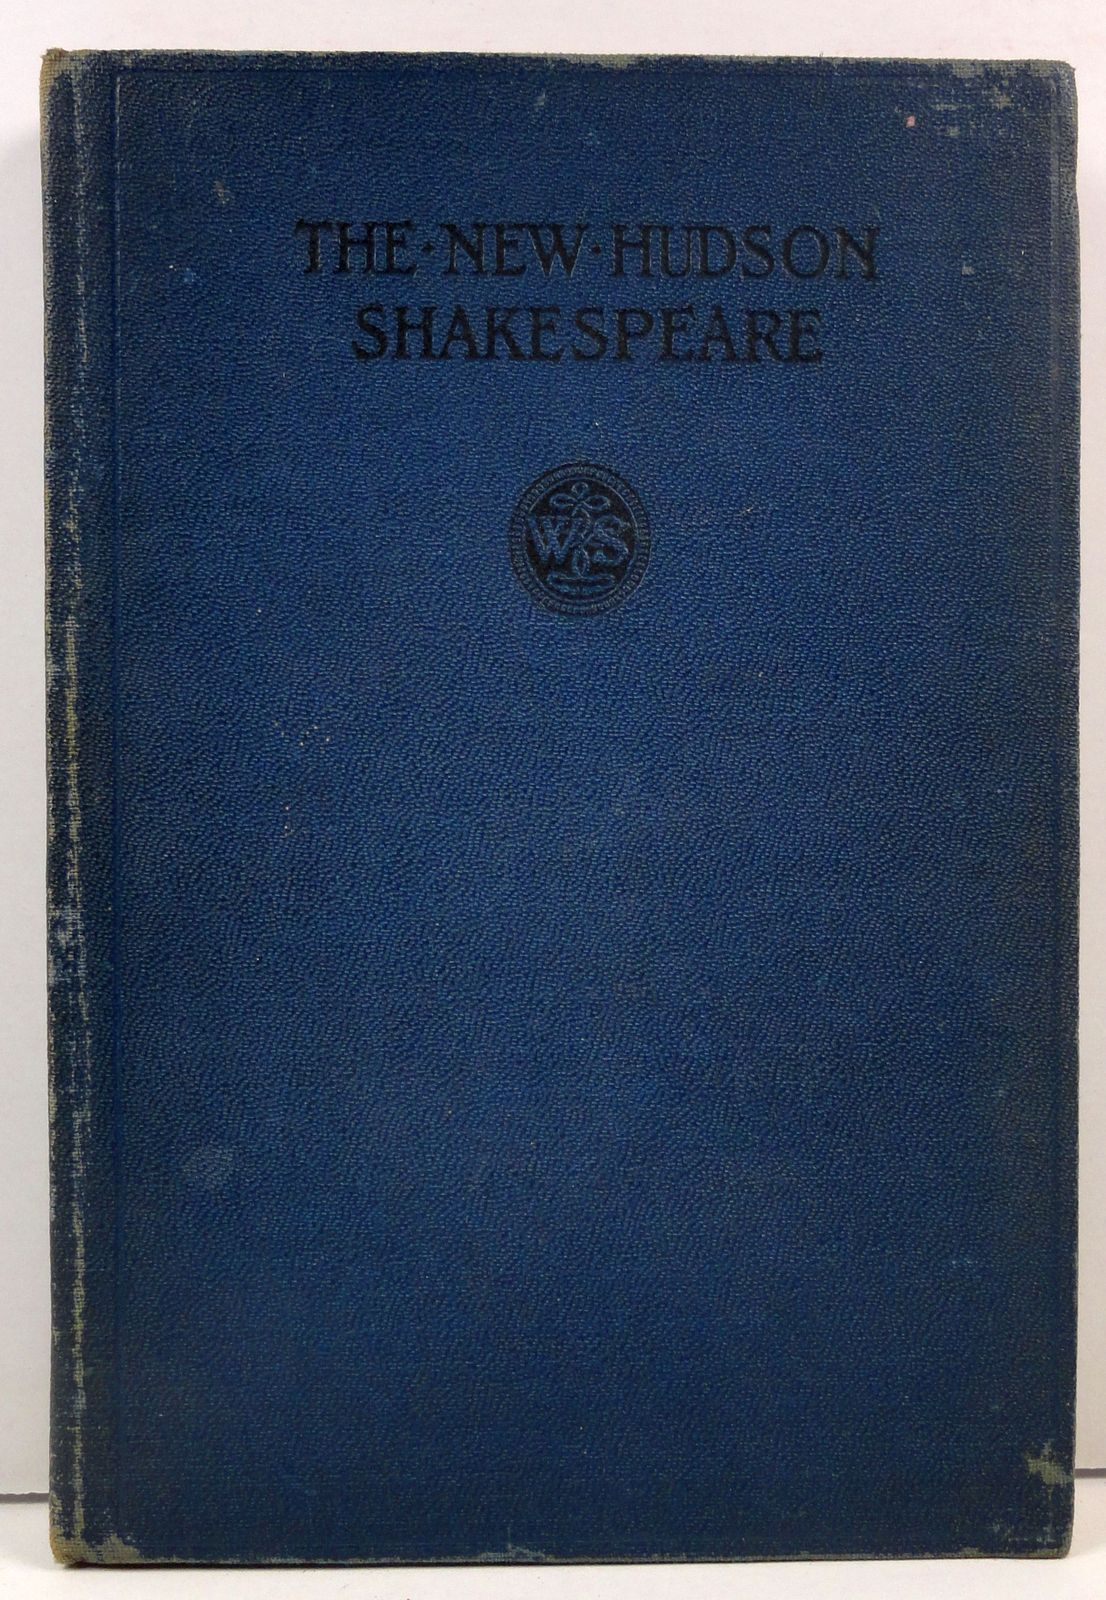 The Tragedy of King Lear The New Hudson Shakespeare 1911